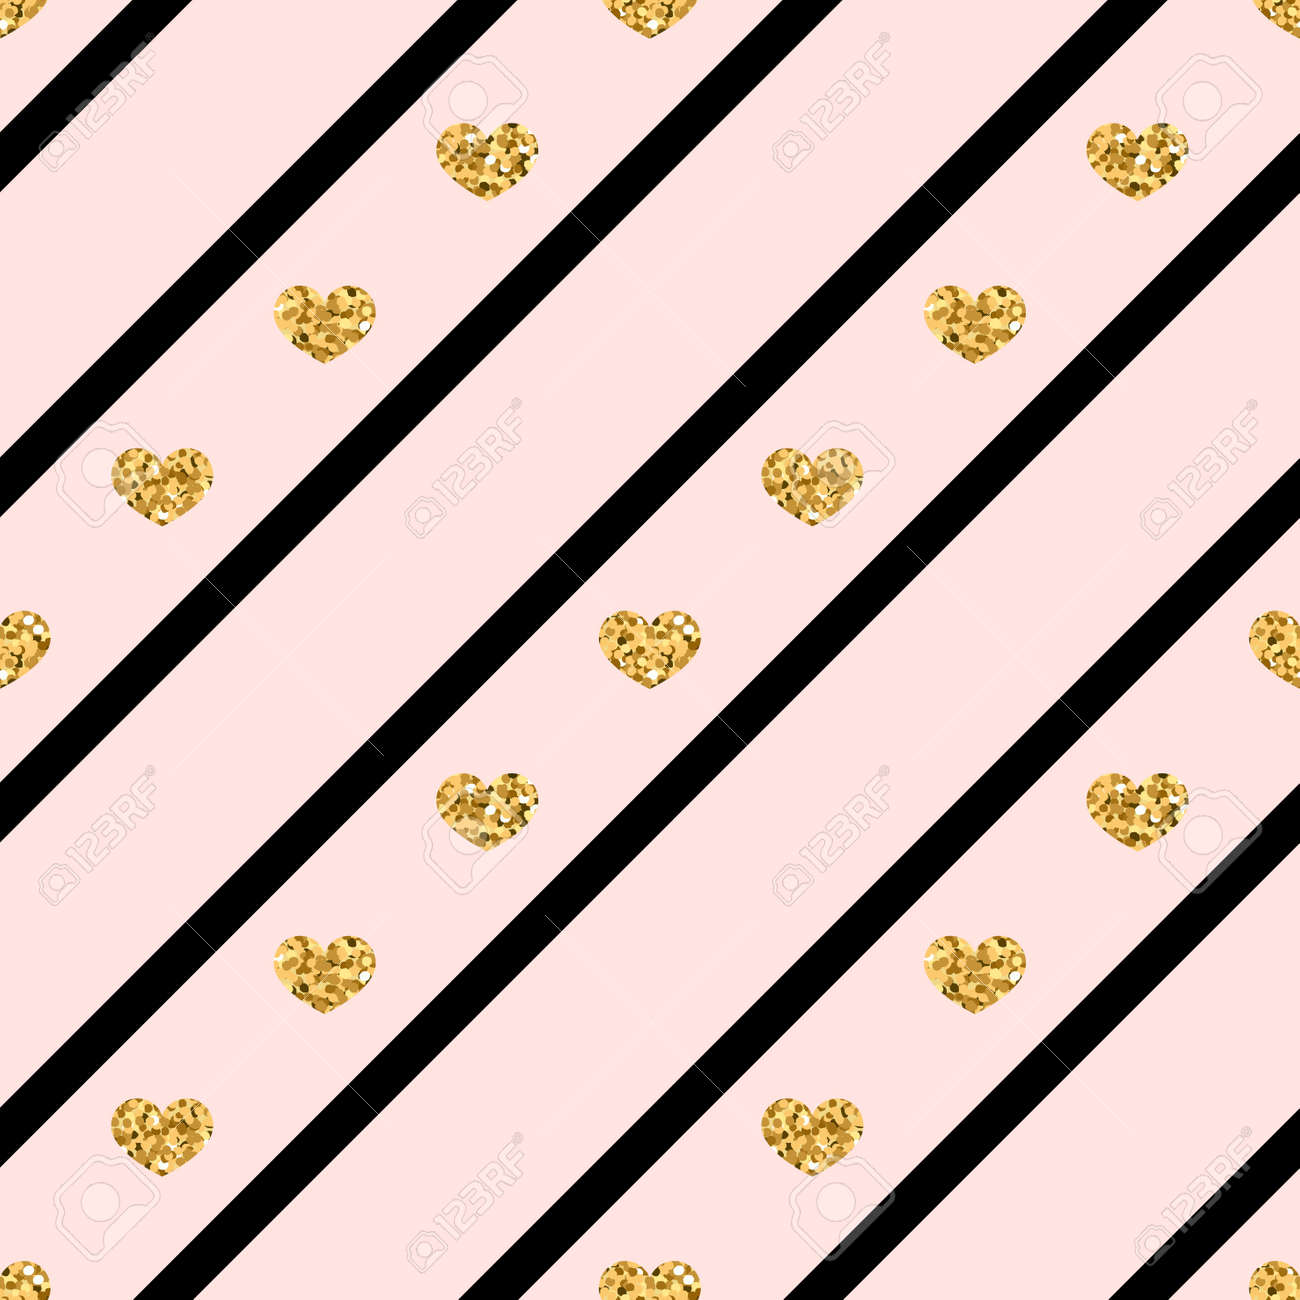 Gold Heart Seamless Pattern Golden Glitter Love Confetti Hearts Royalty Free Cliparts Vectors And Stock Illustration Image 82103920